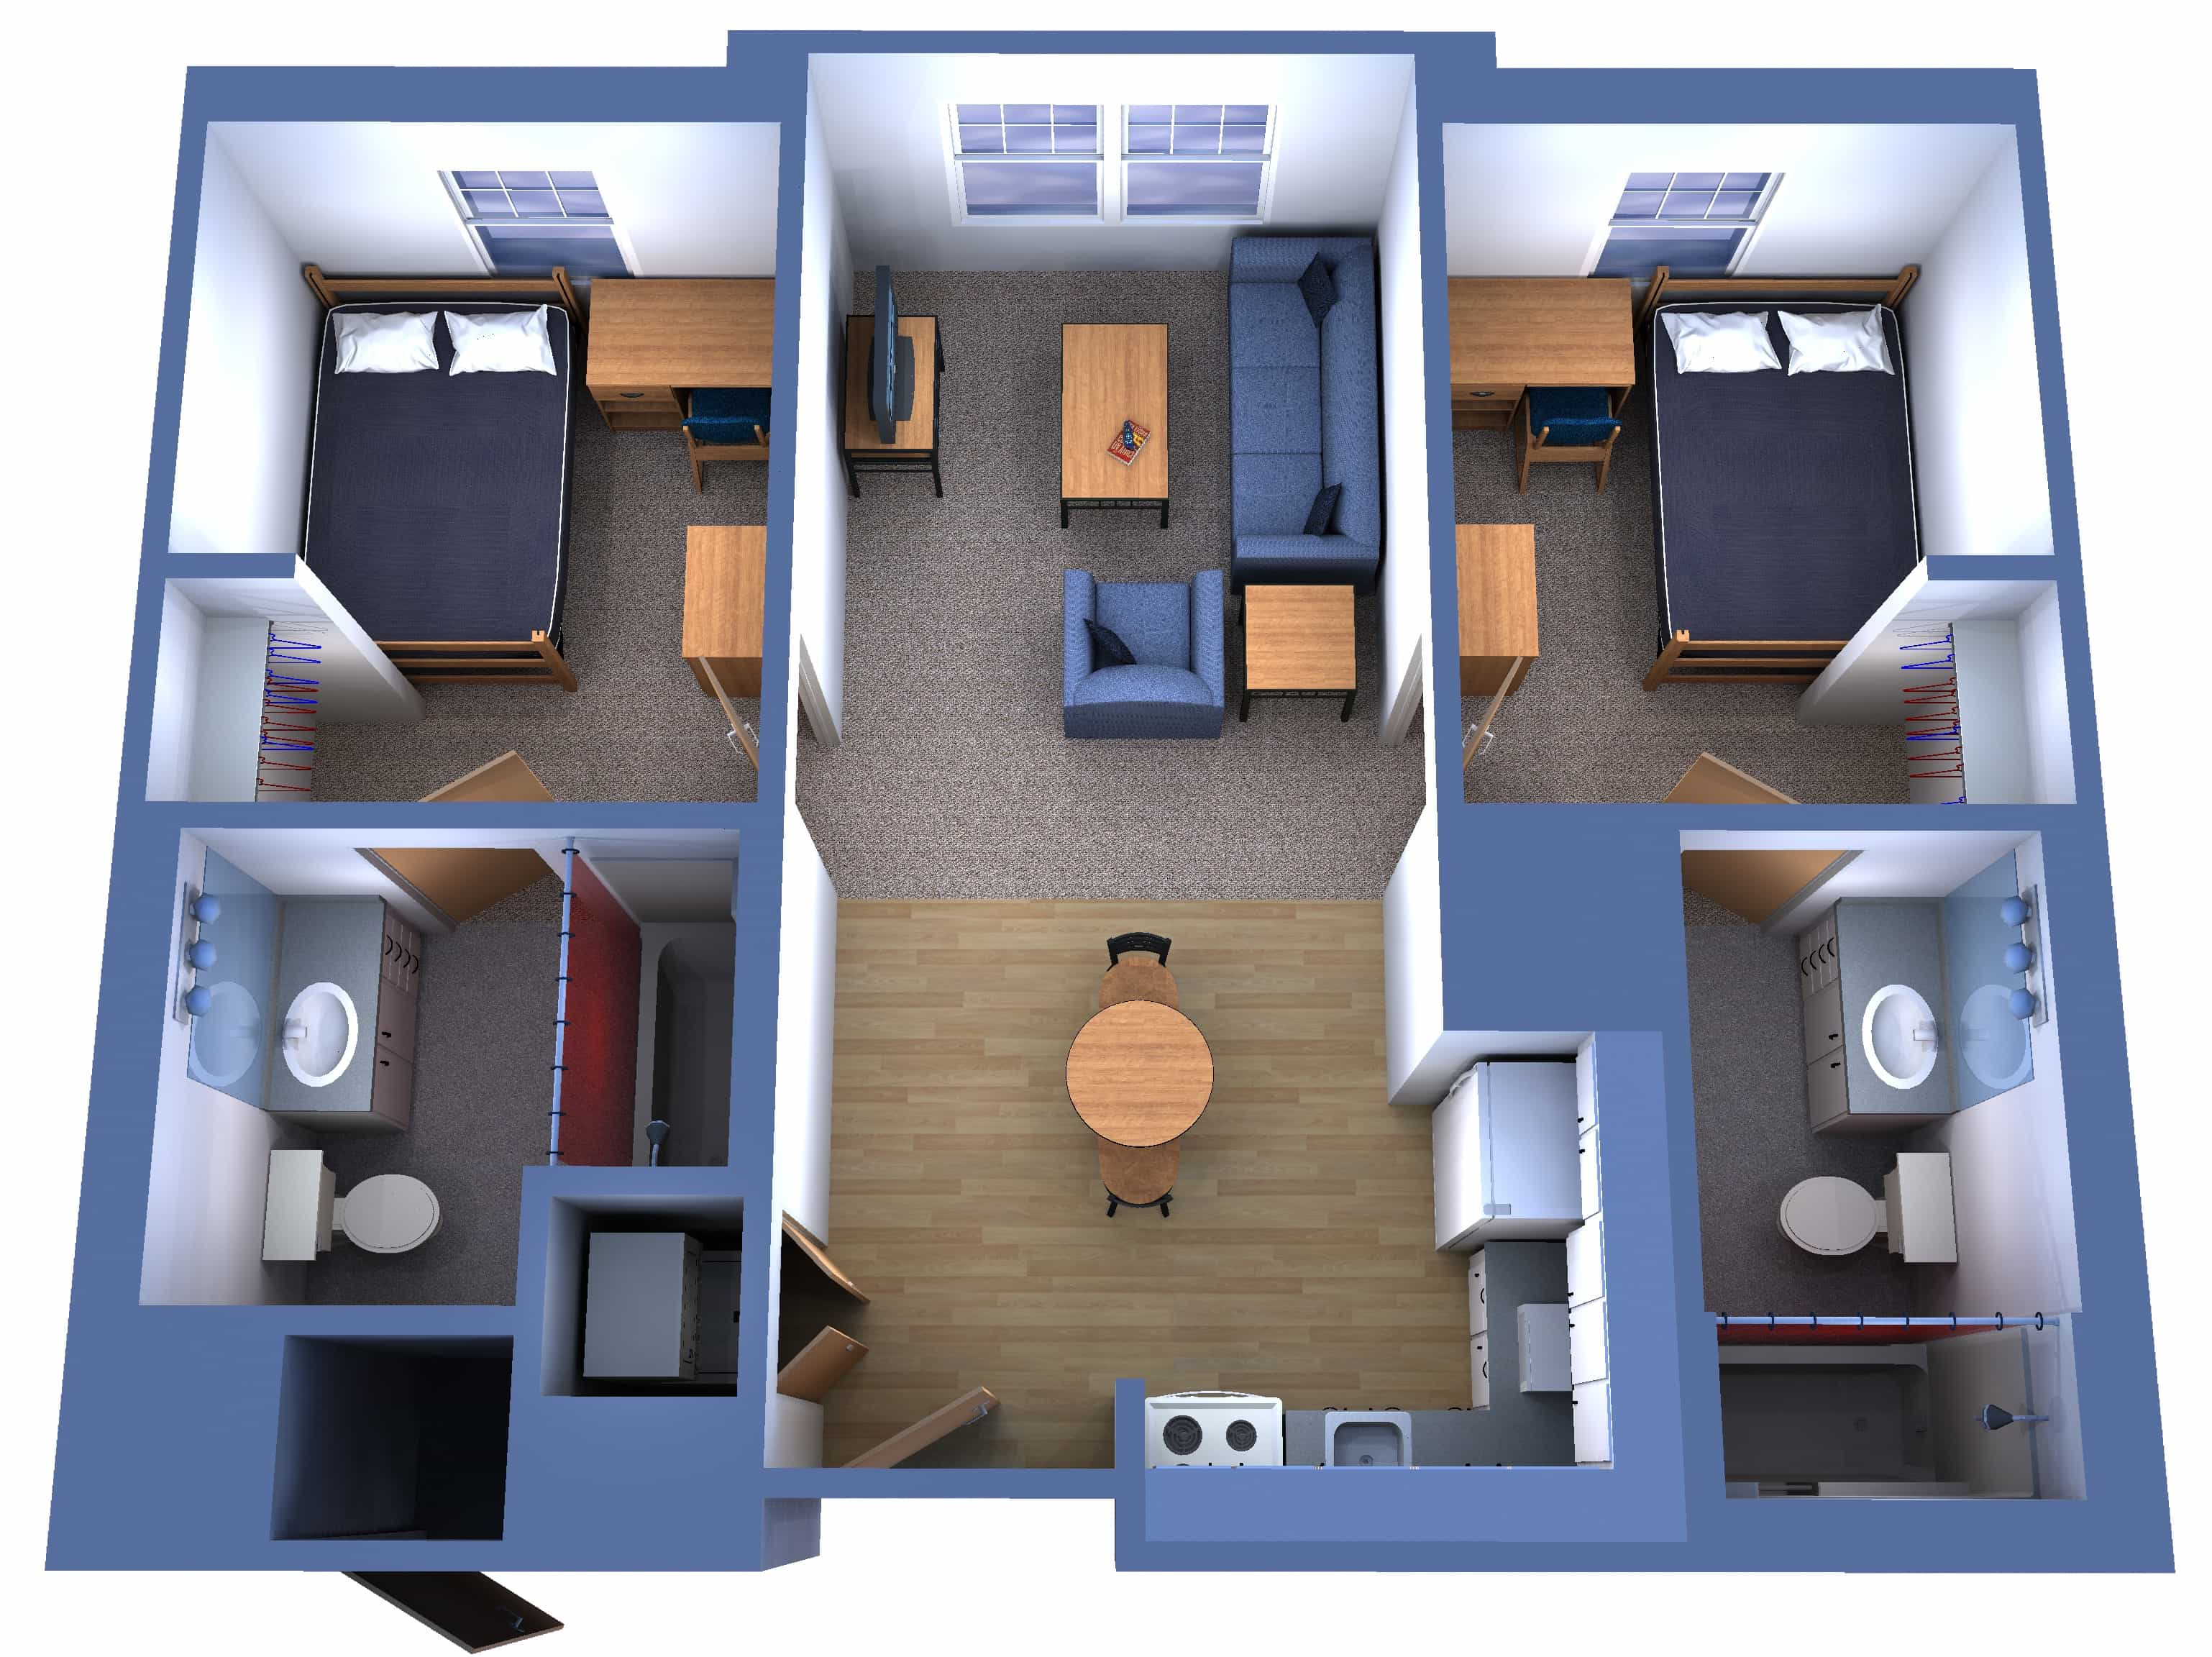 3D Two Bedroom House Layout Design Plans 22449 Interior